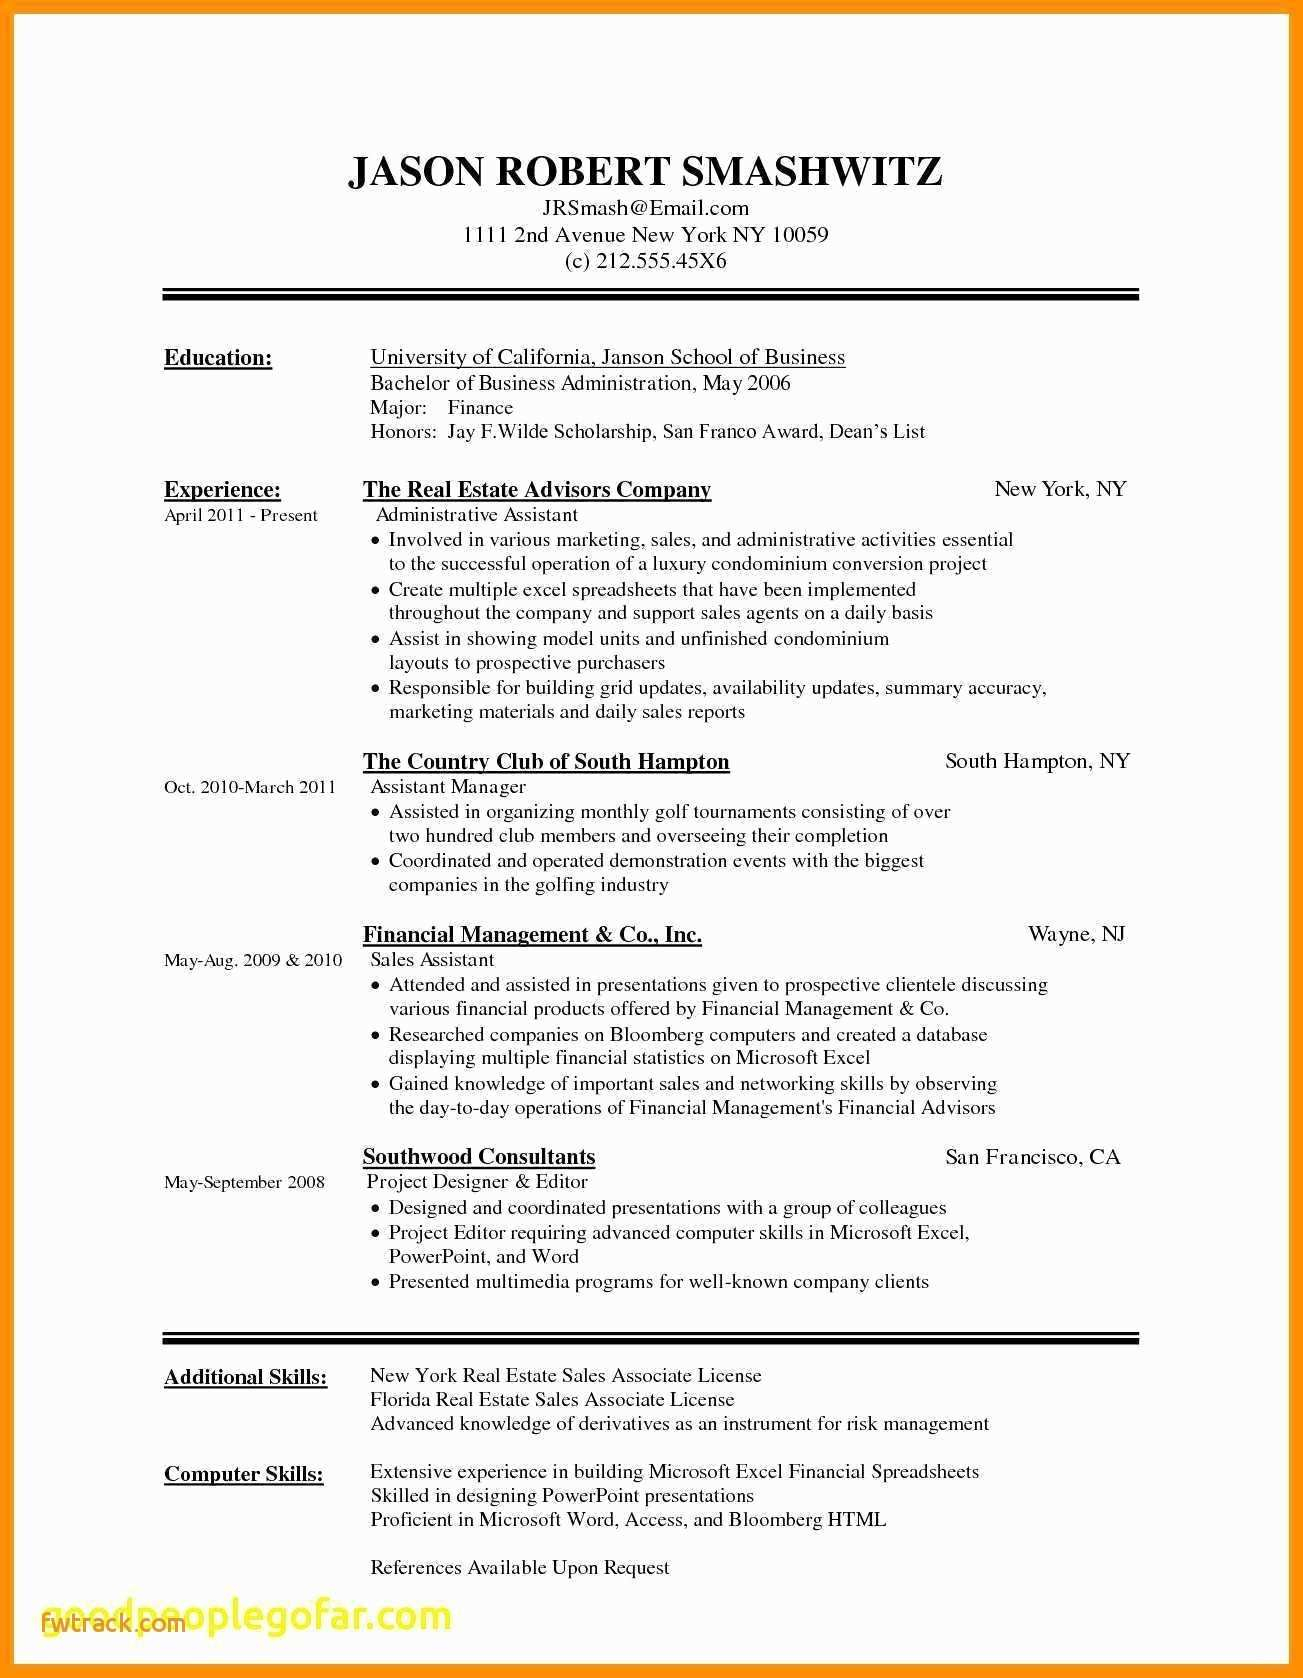 Emailable Resume Templates - Resume Templates for Pages Fwtrack Fwtrack